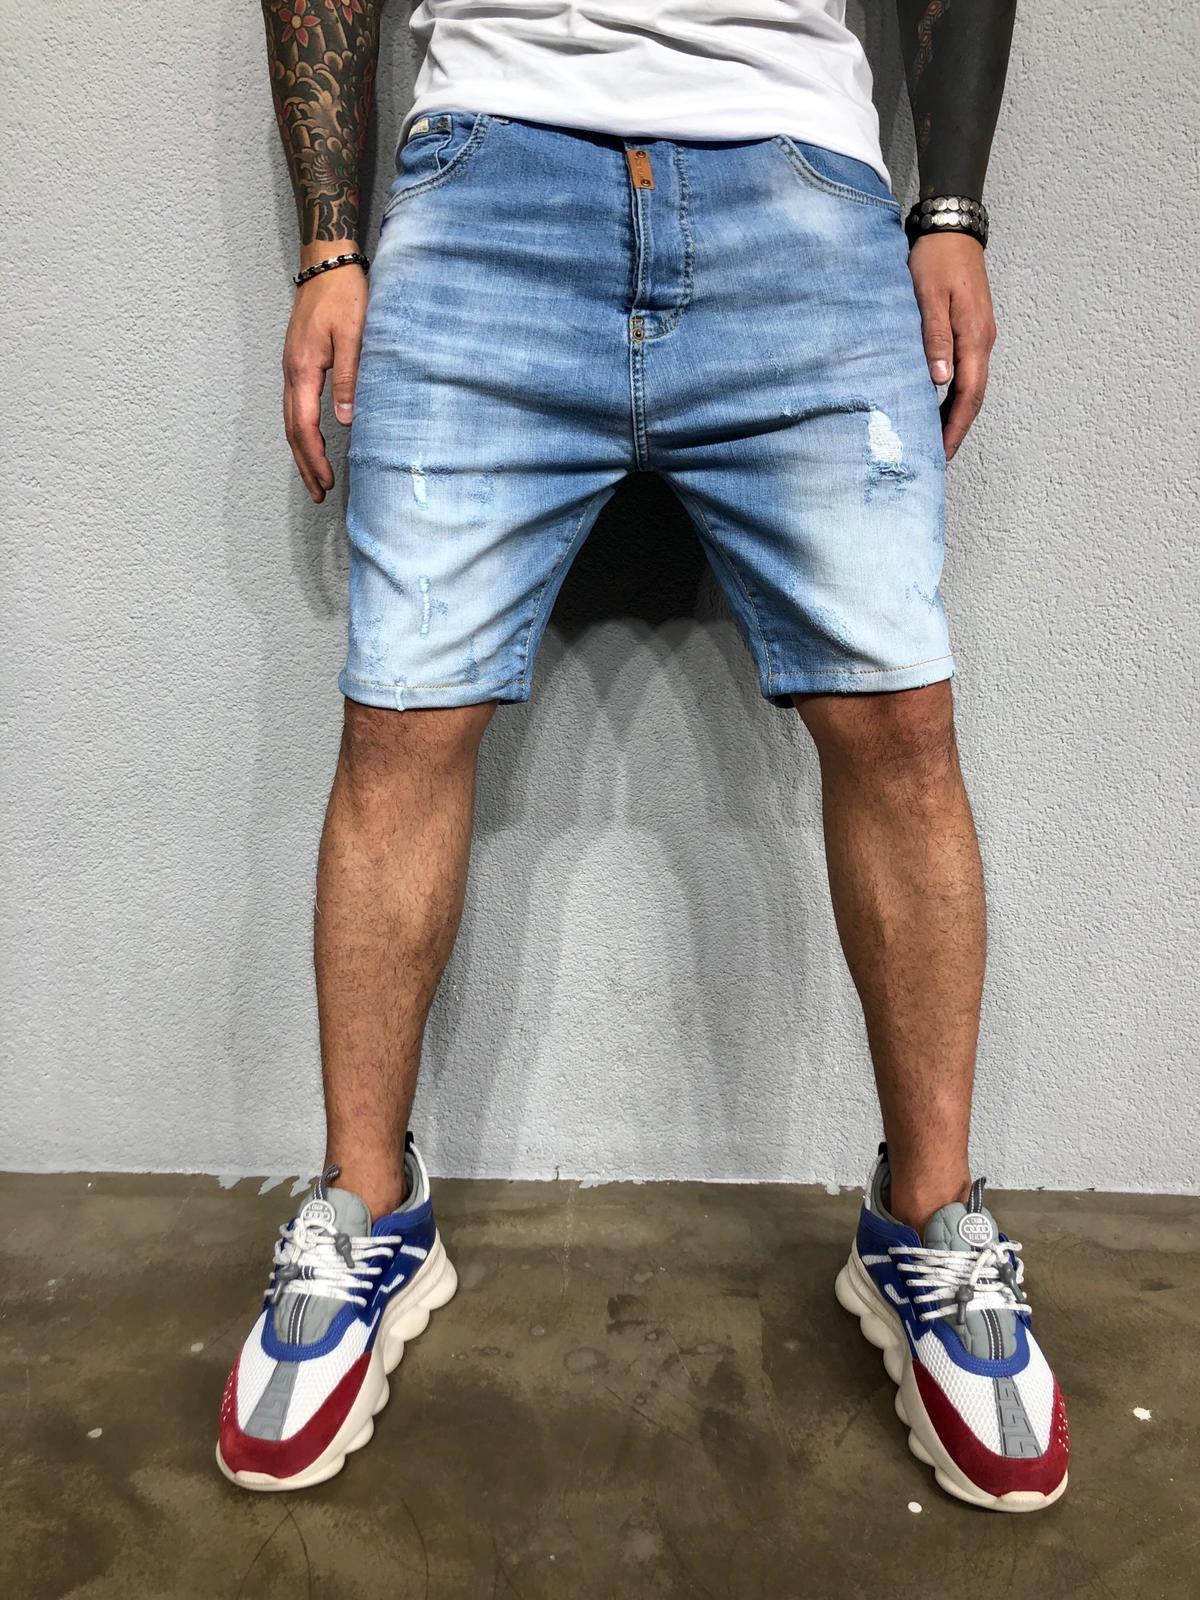 Discover the Latest Men's Denim Shorts at Sneakerjeans